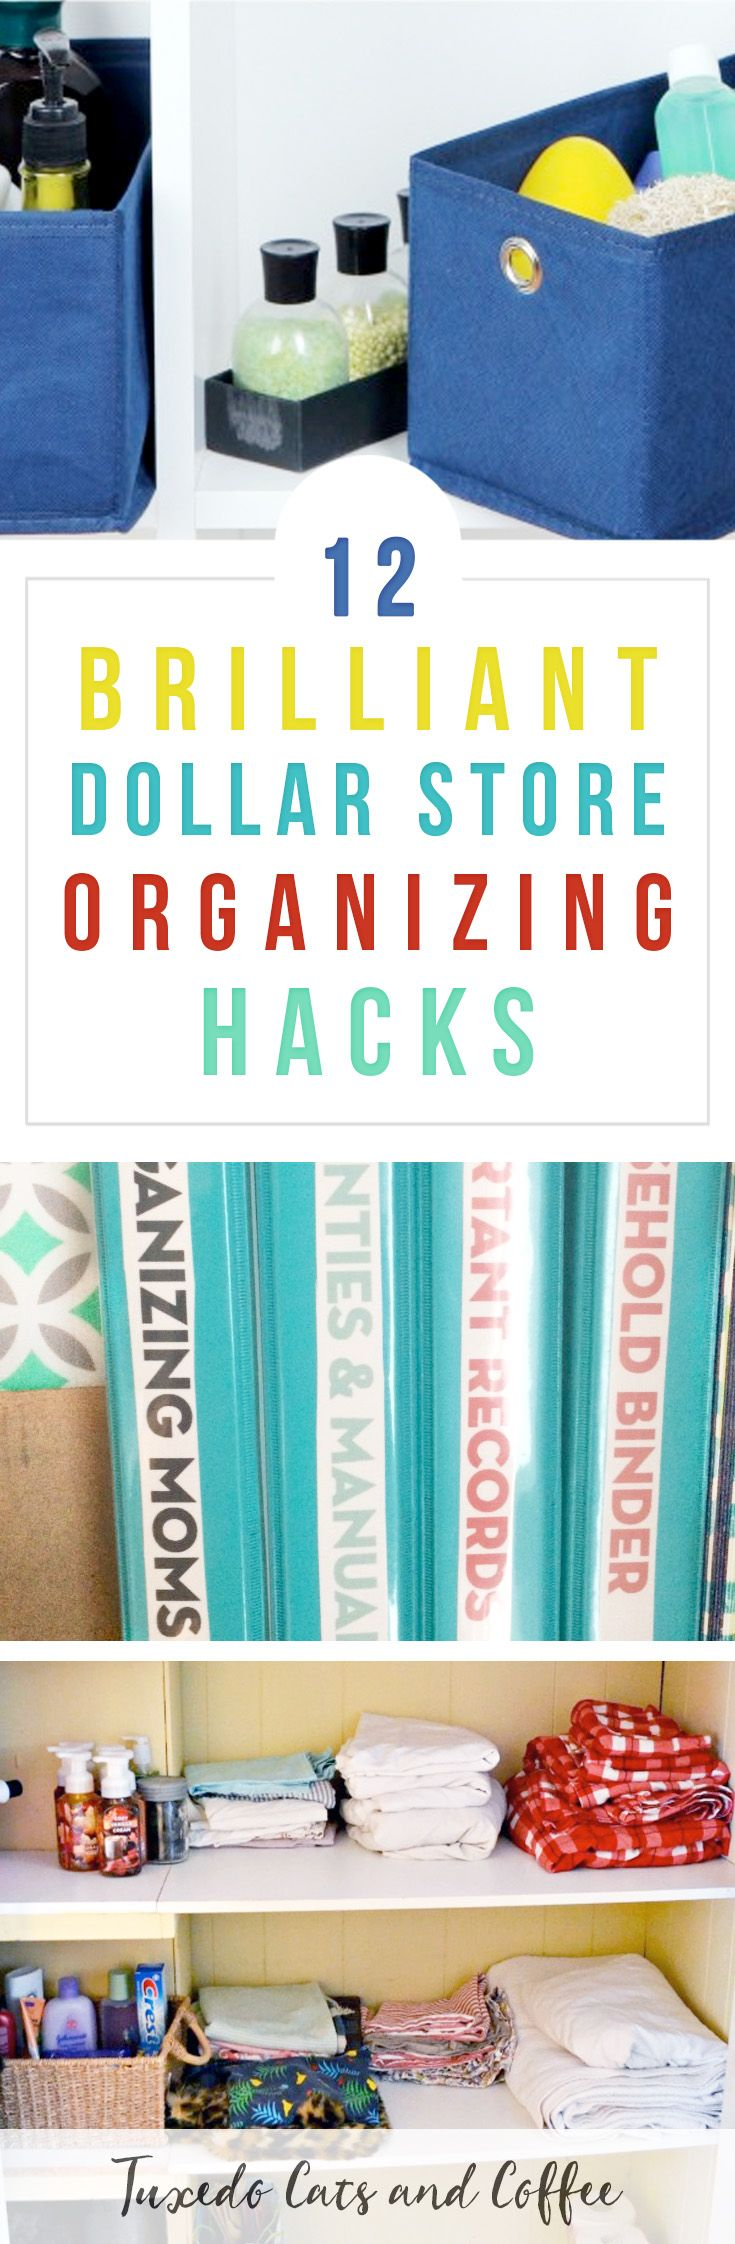 Organizing your home doesn't have to cost a ton of money.  In fact, there are many Dollar Store organizing hacks that you can do for just $1 per container or with items you already have at home.  Here are a bunch of dollar store organizing hacks from blogs across the web. #organizing #organization #organizinghack